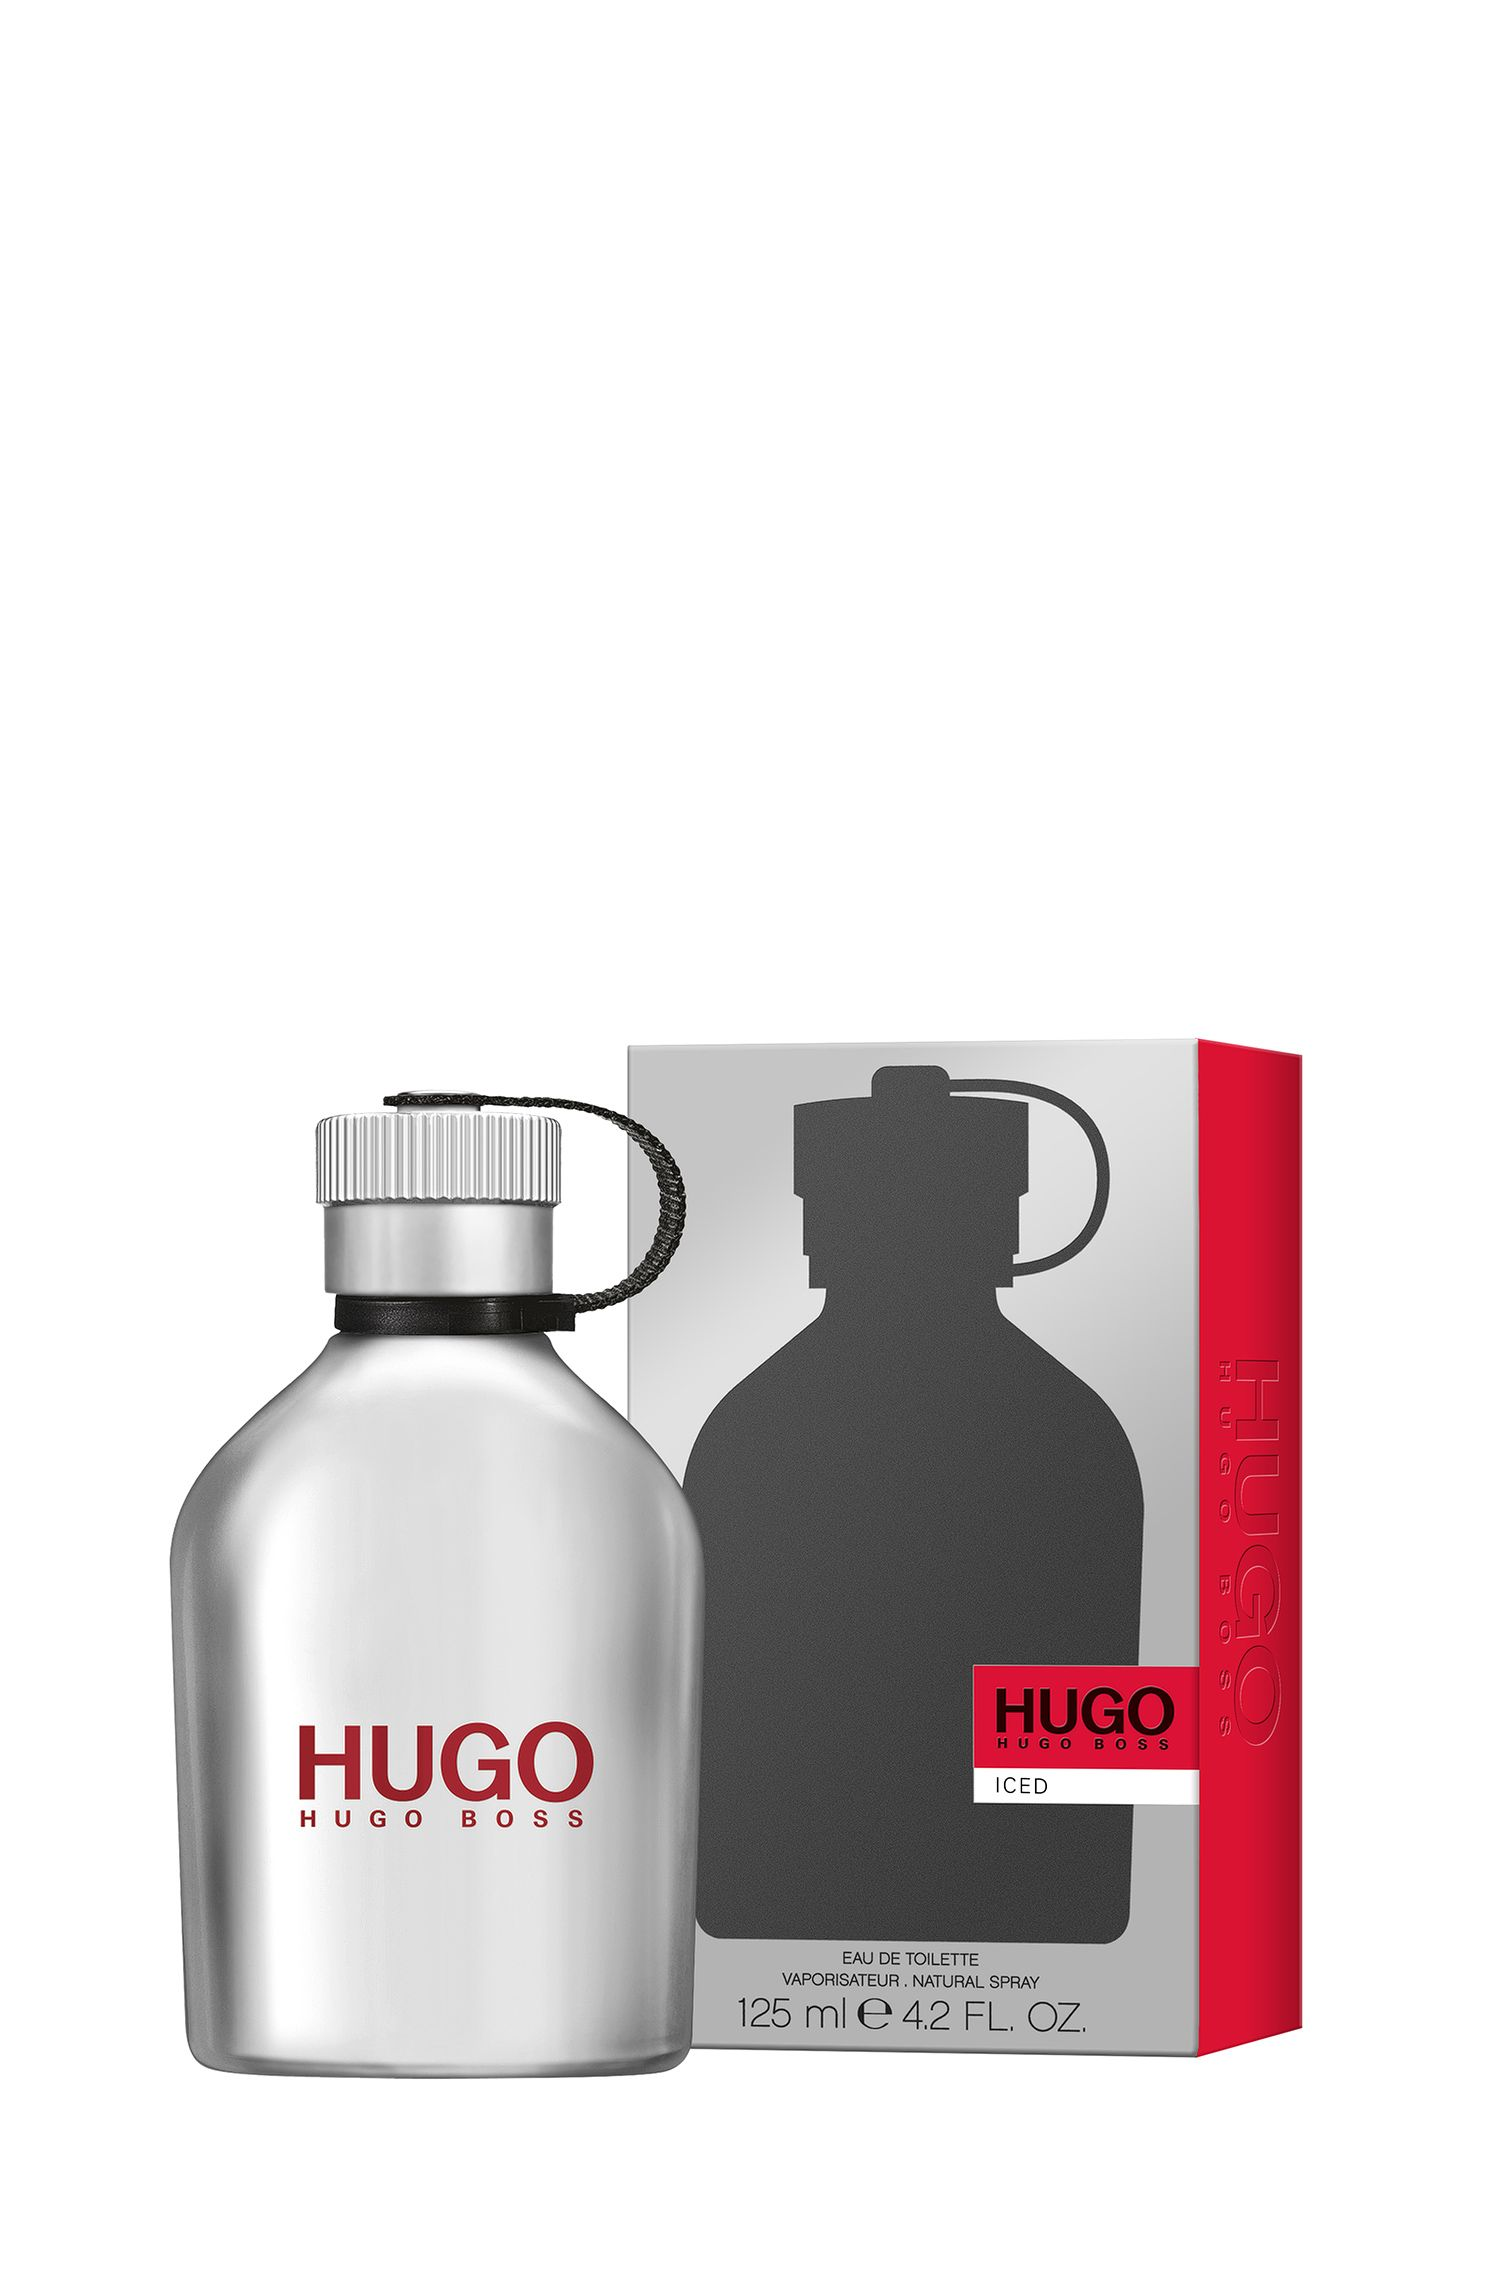 'HUGO Iced' Eau de Toilette 125 ml